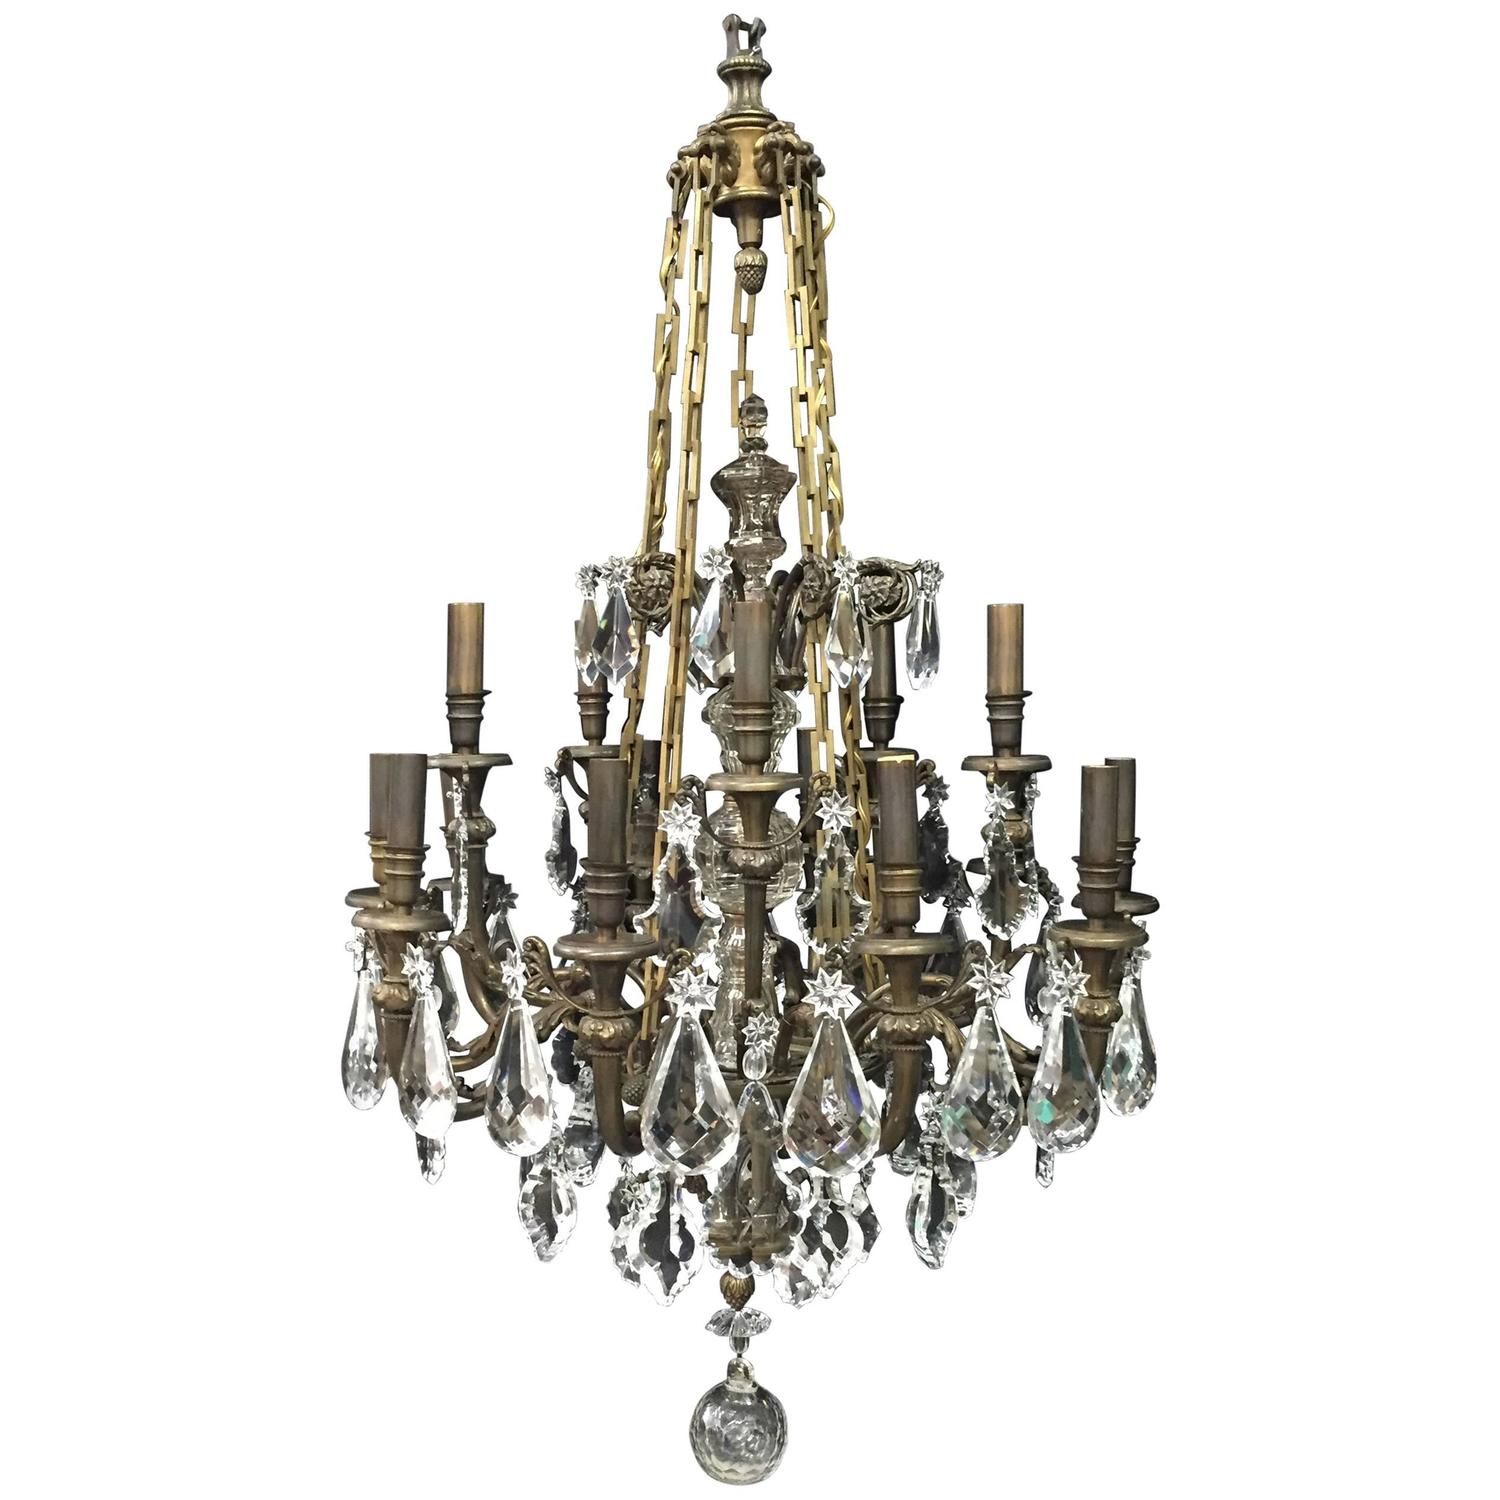 Baccarat Chandeliers and Pendants 52 For Sale at 1stdibs